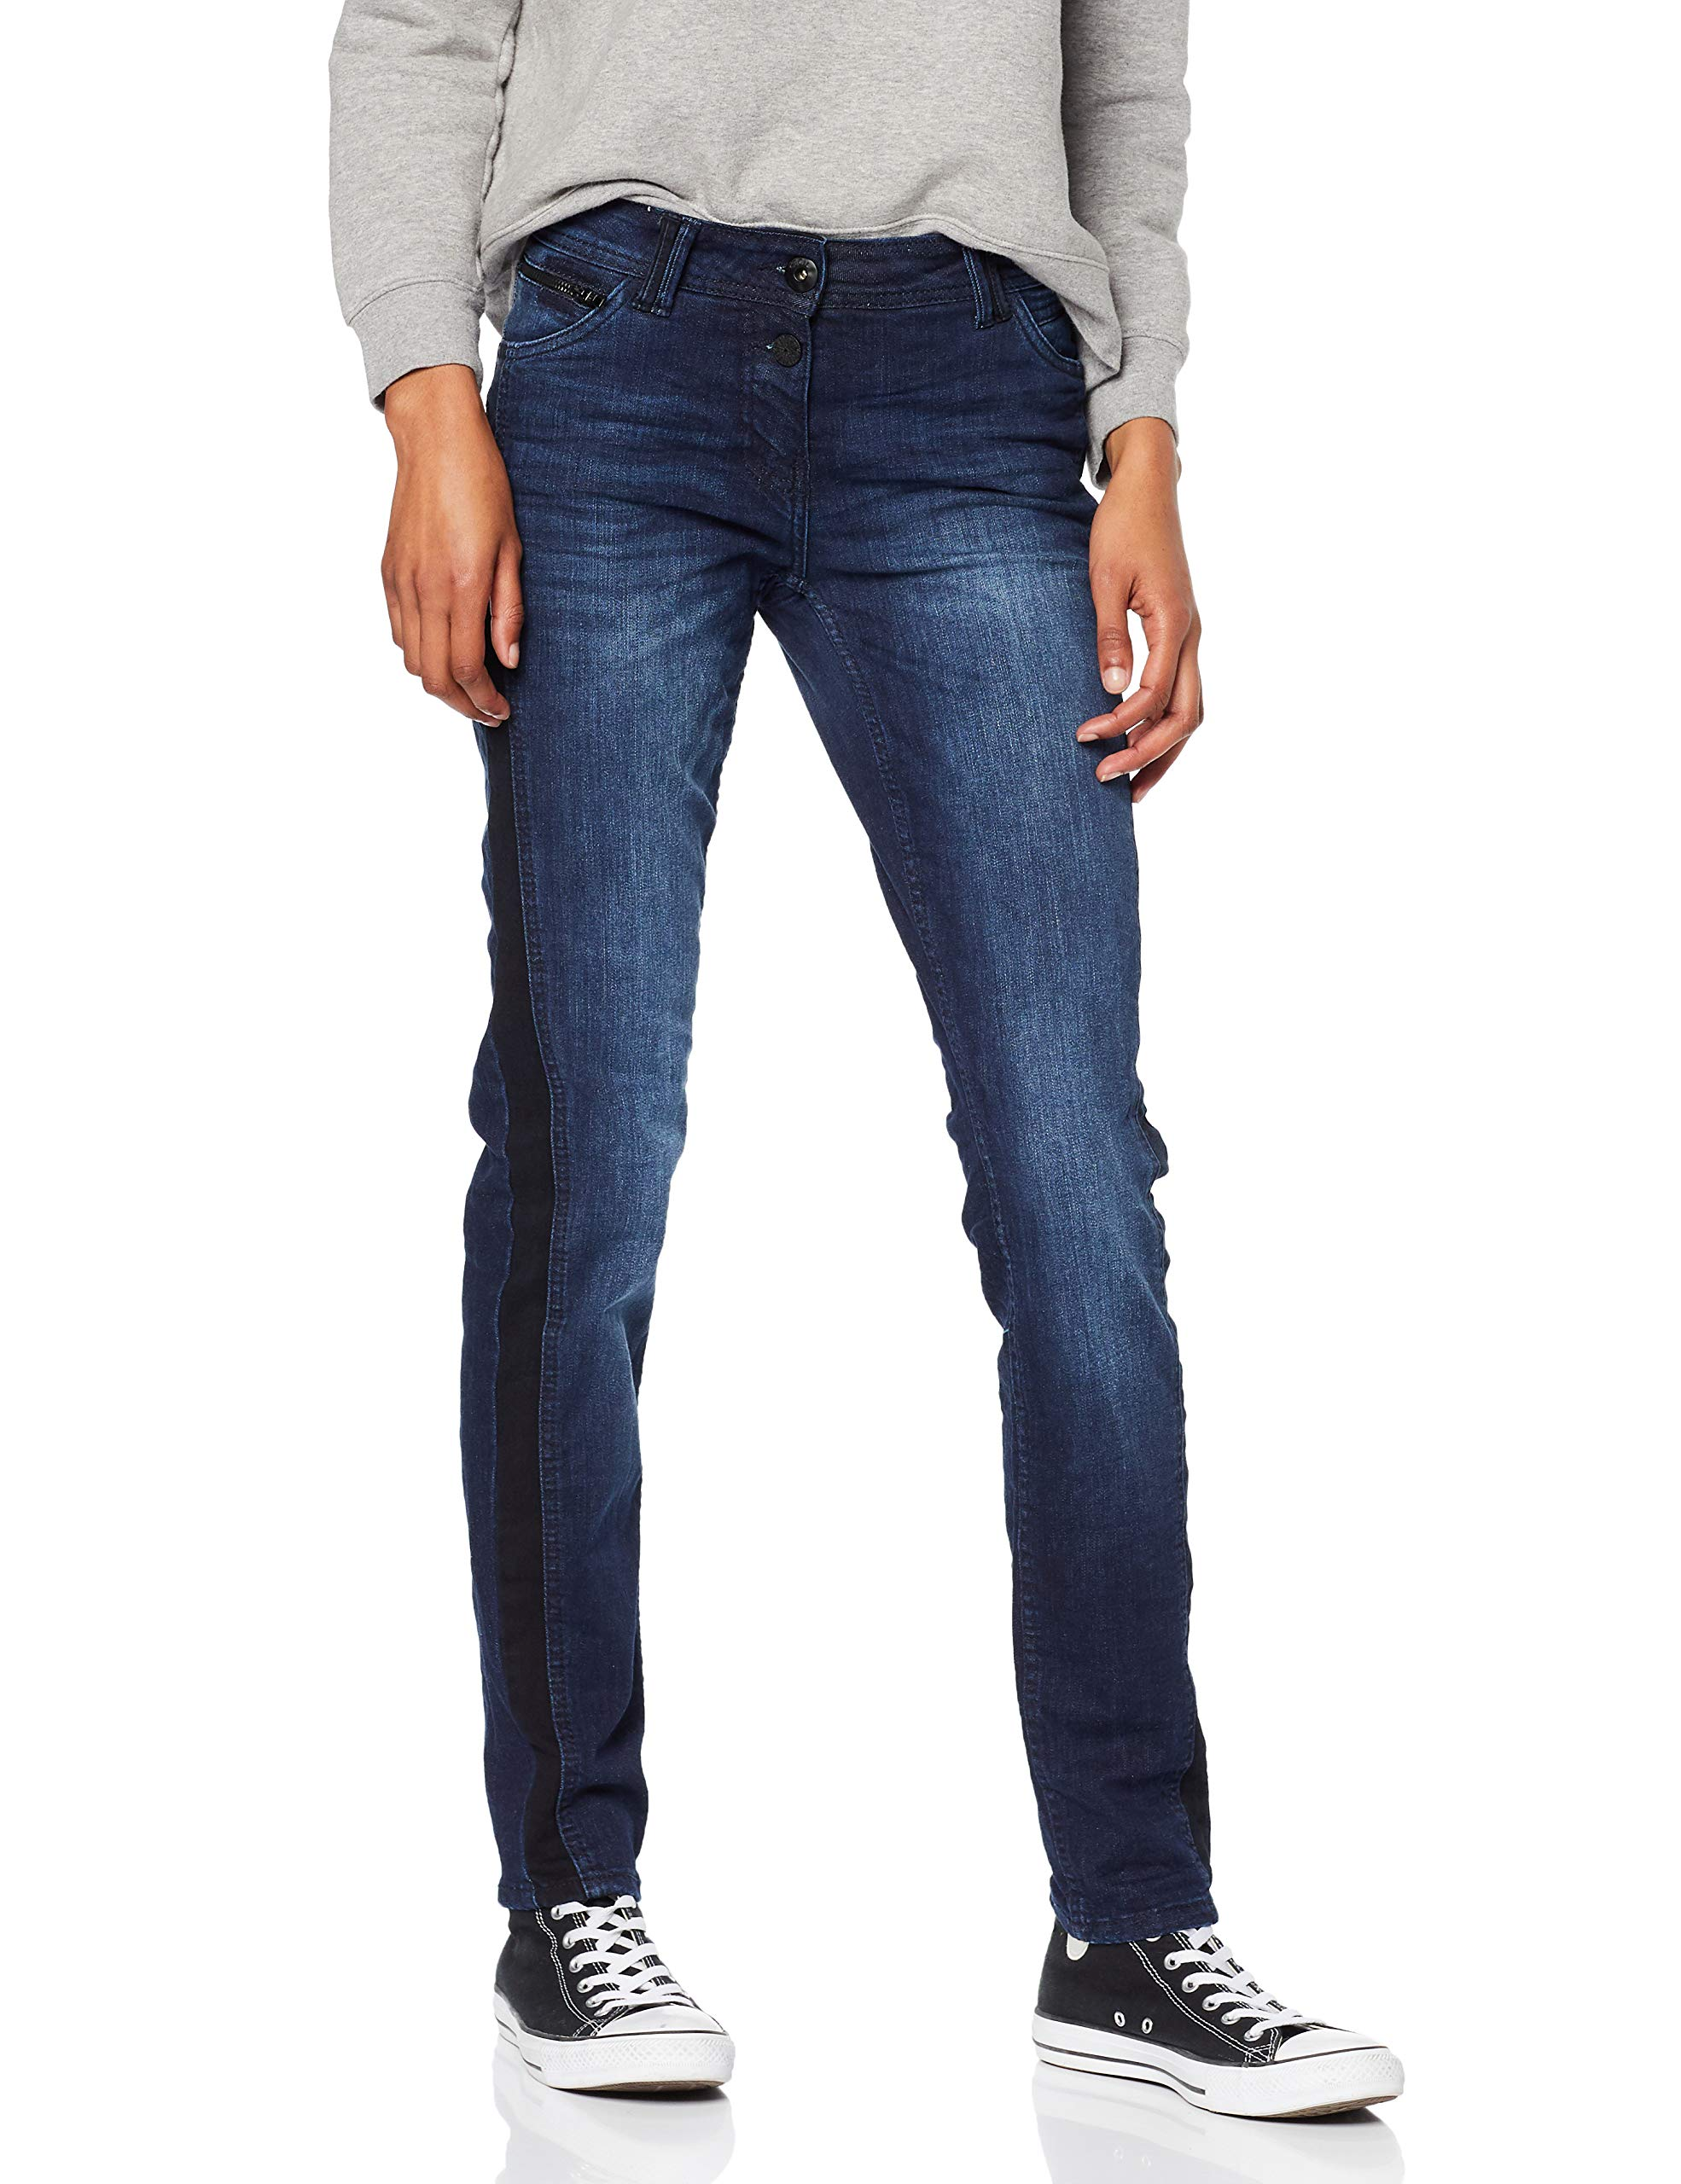 Femme 32l SlimMulticoloreauthentic Jean Cecil X B371691 1028536w Wash Used DYWHIE92